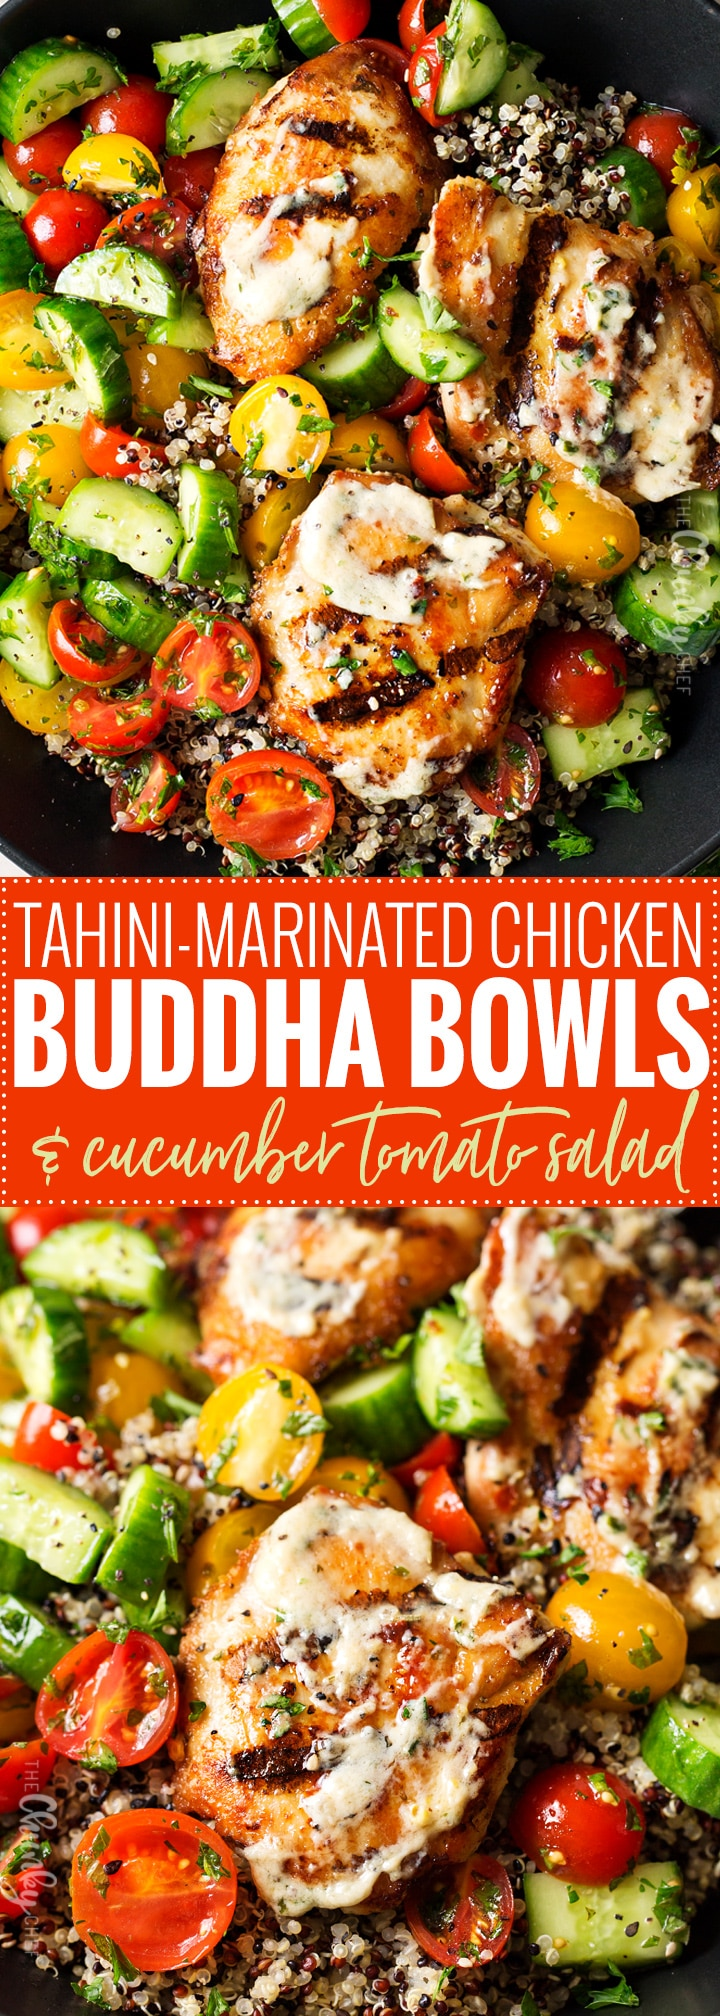 Tahini Marinated Chicken Buddha Bowl | Healthy, delicious, and easy to make... these buddha bowls are the perfect dinner or lunch! You'll love the tahini marinade that doubles as a sauce! | http://thechunkychef.com